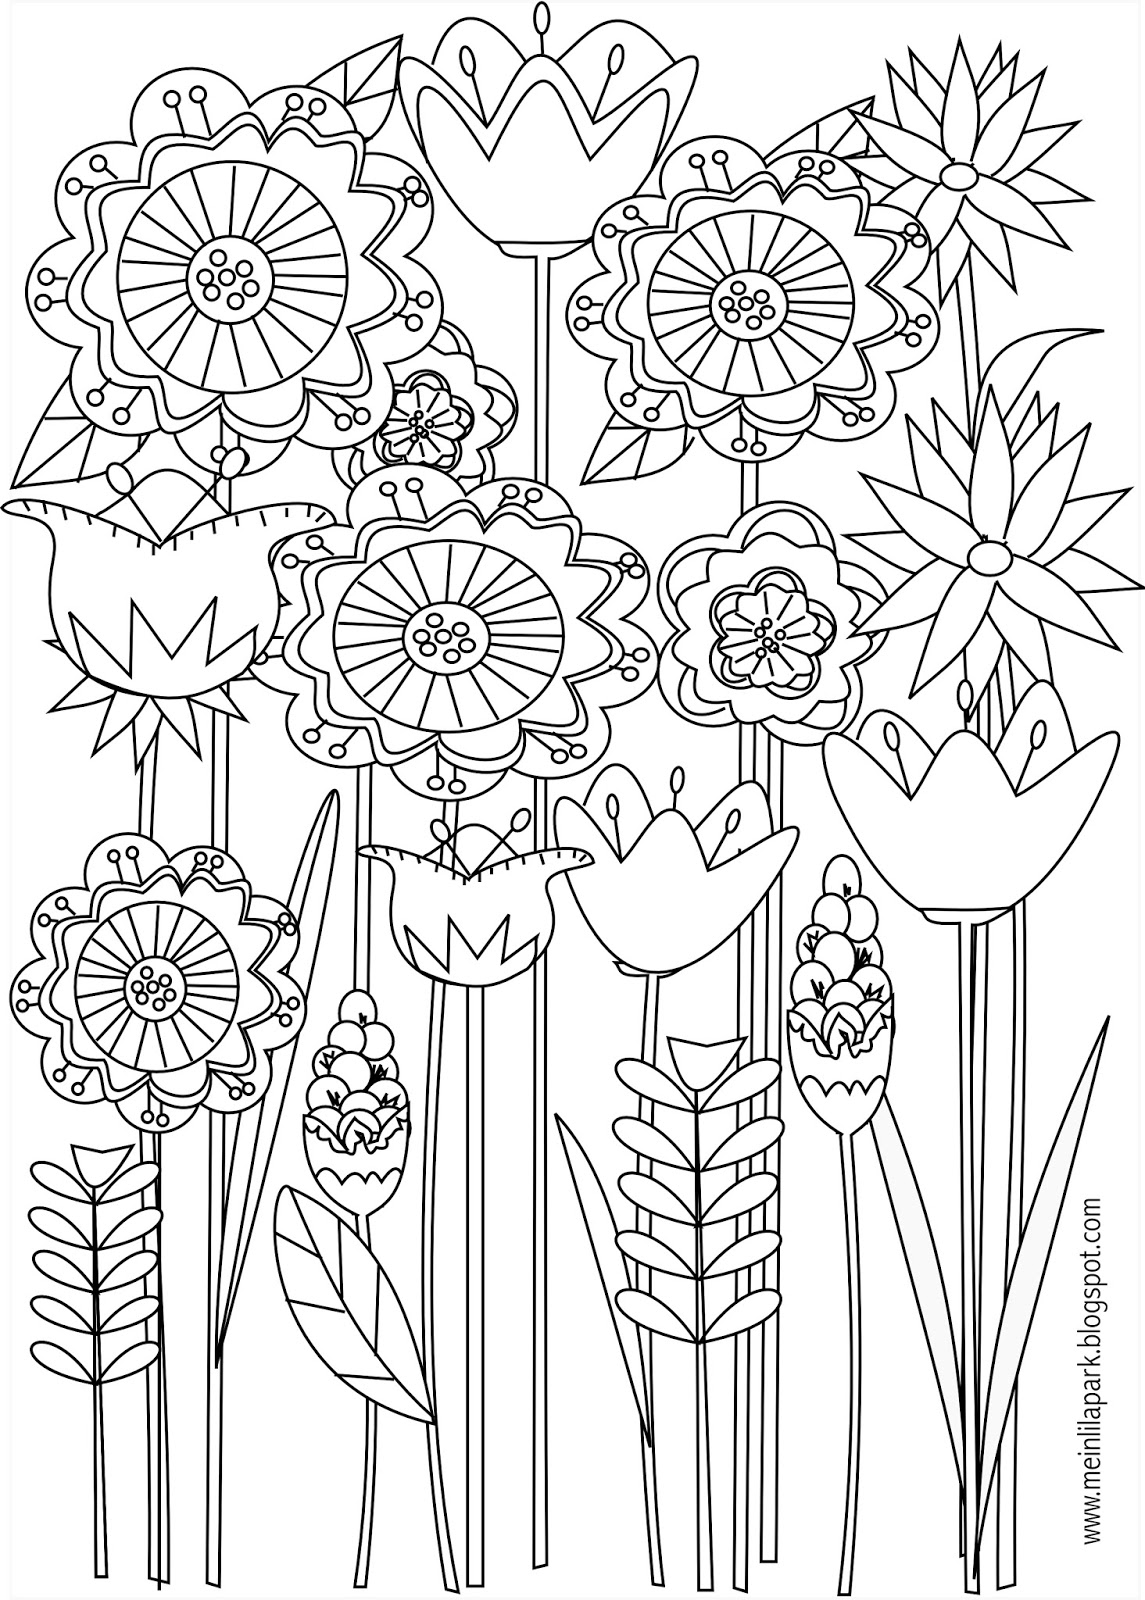 coloring pages for adults flowers flower coloring pages for adults best coloring pages for pages flowers coloring adults for